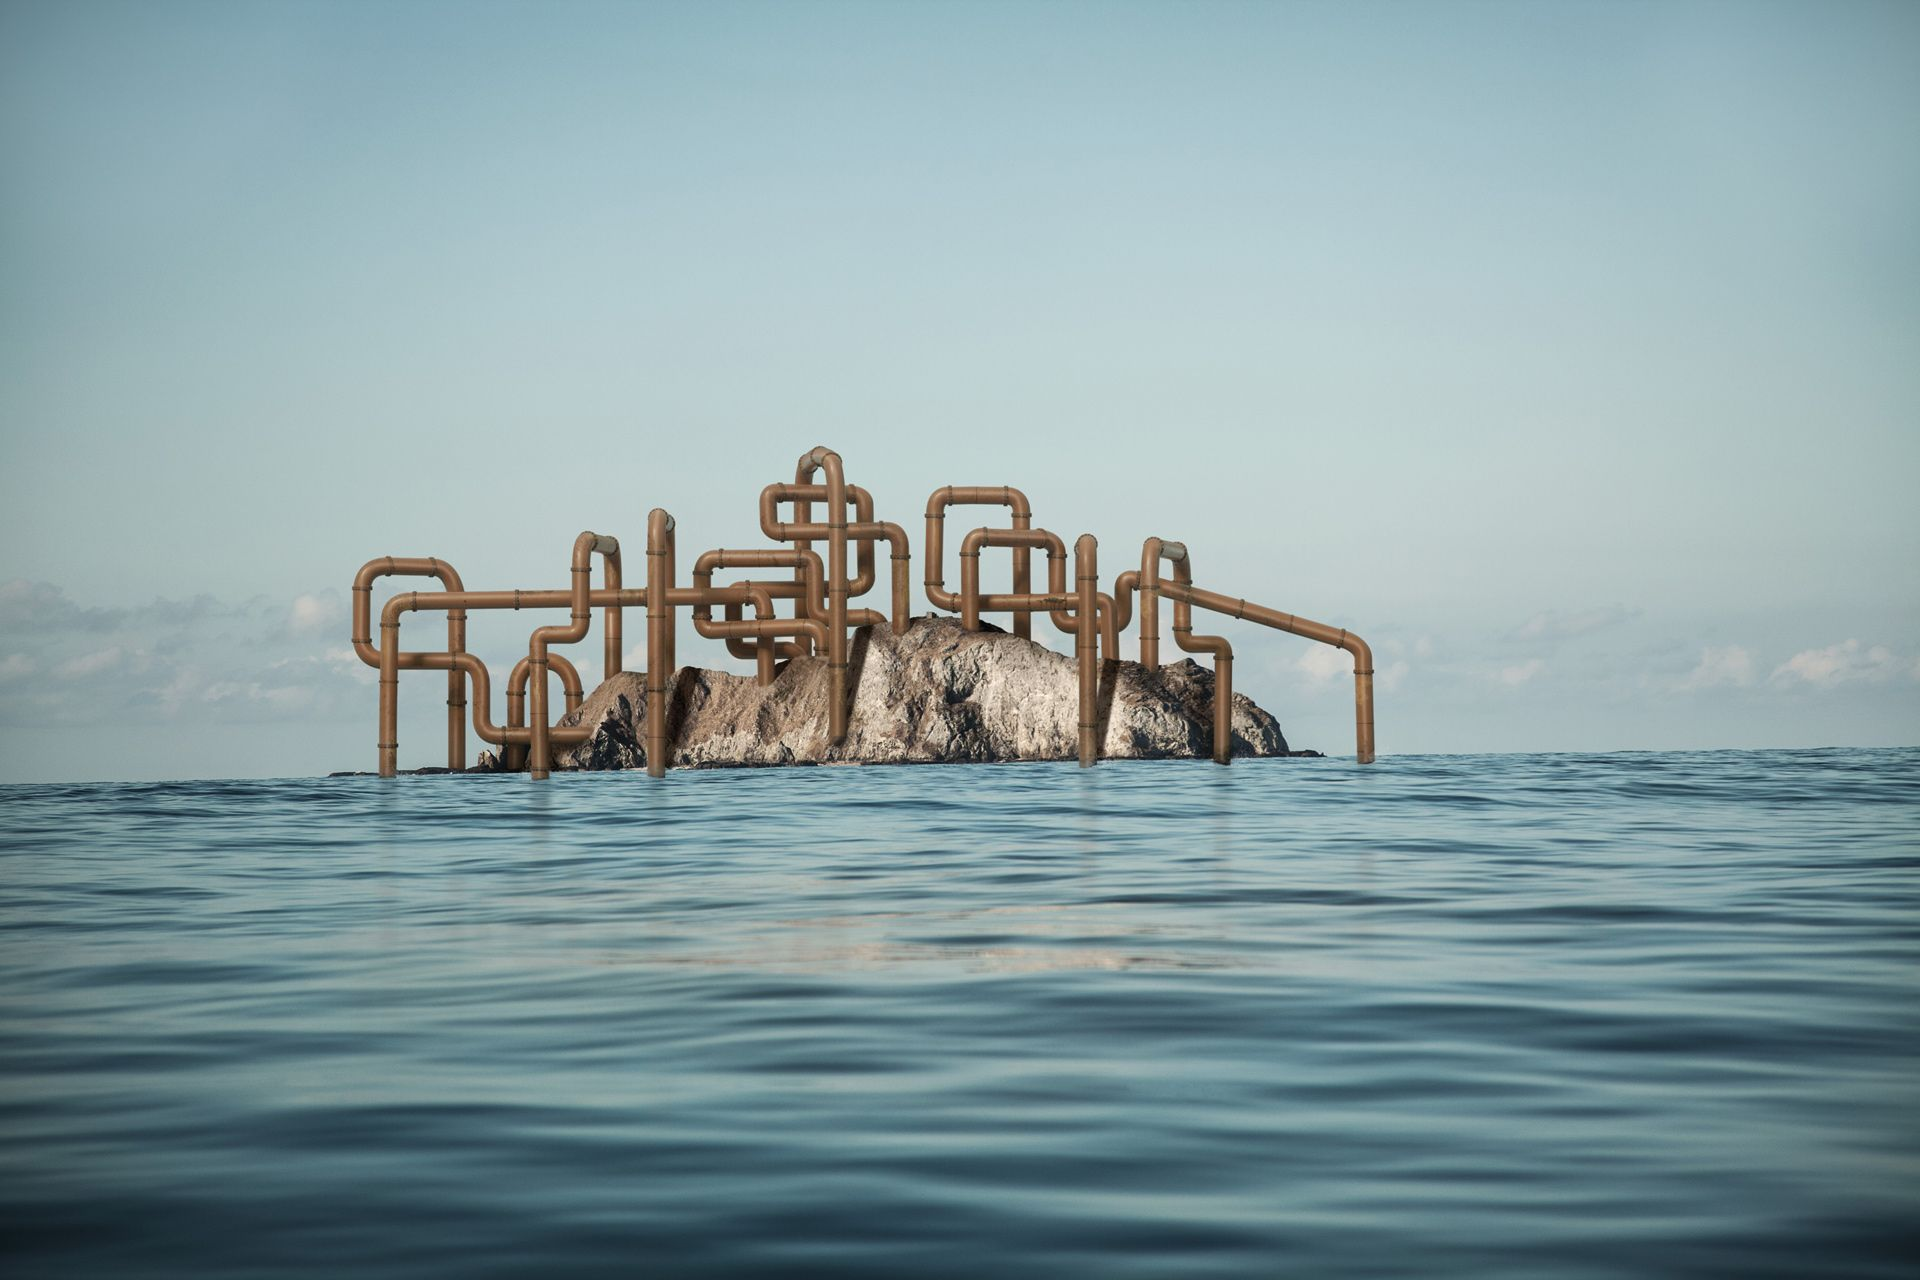 cluster of pipelines going through a rock in middle of ocean by Simon Duhamel for Pipeline